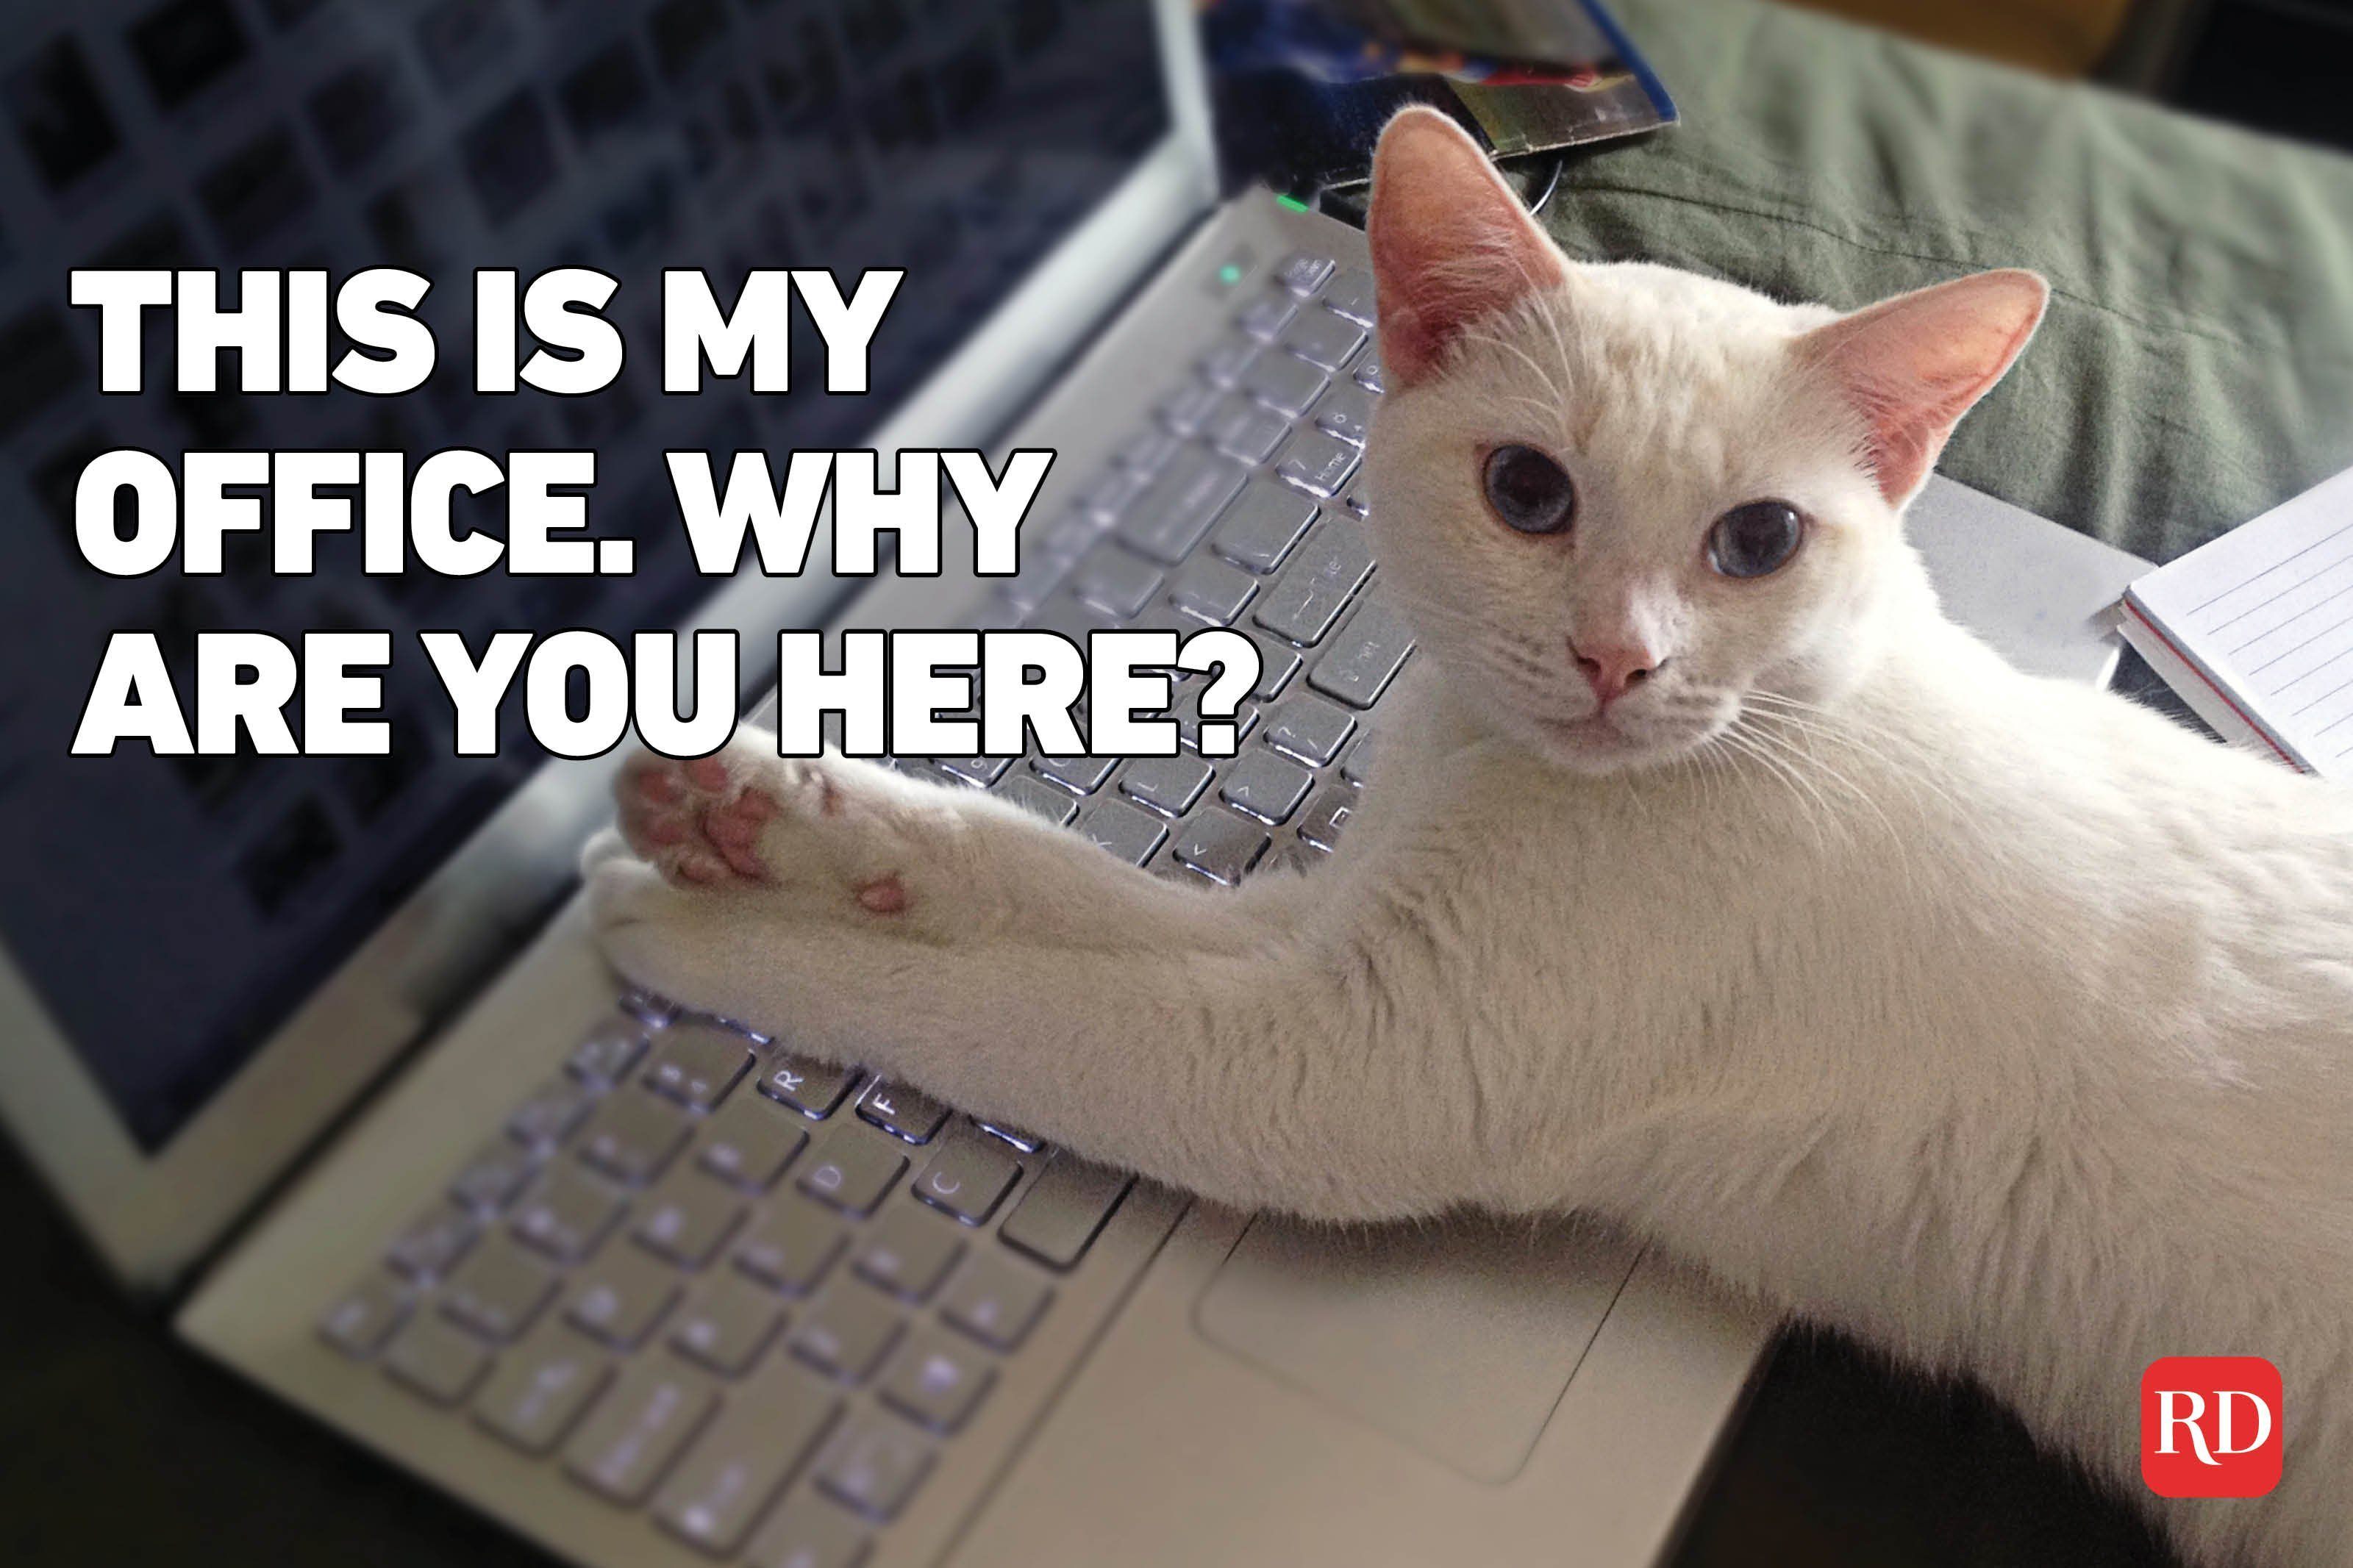 Meme text over image of cat on laptop